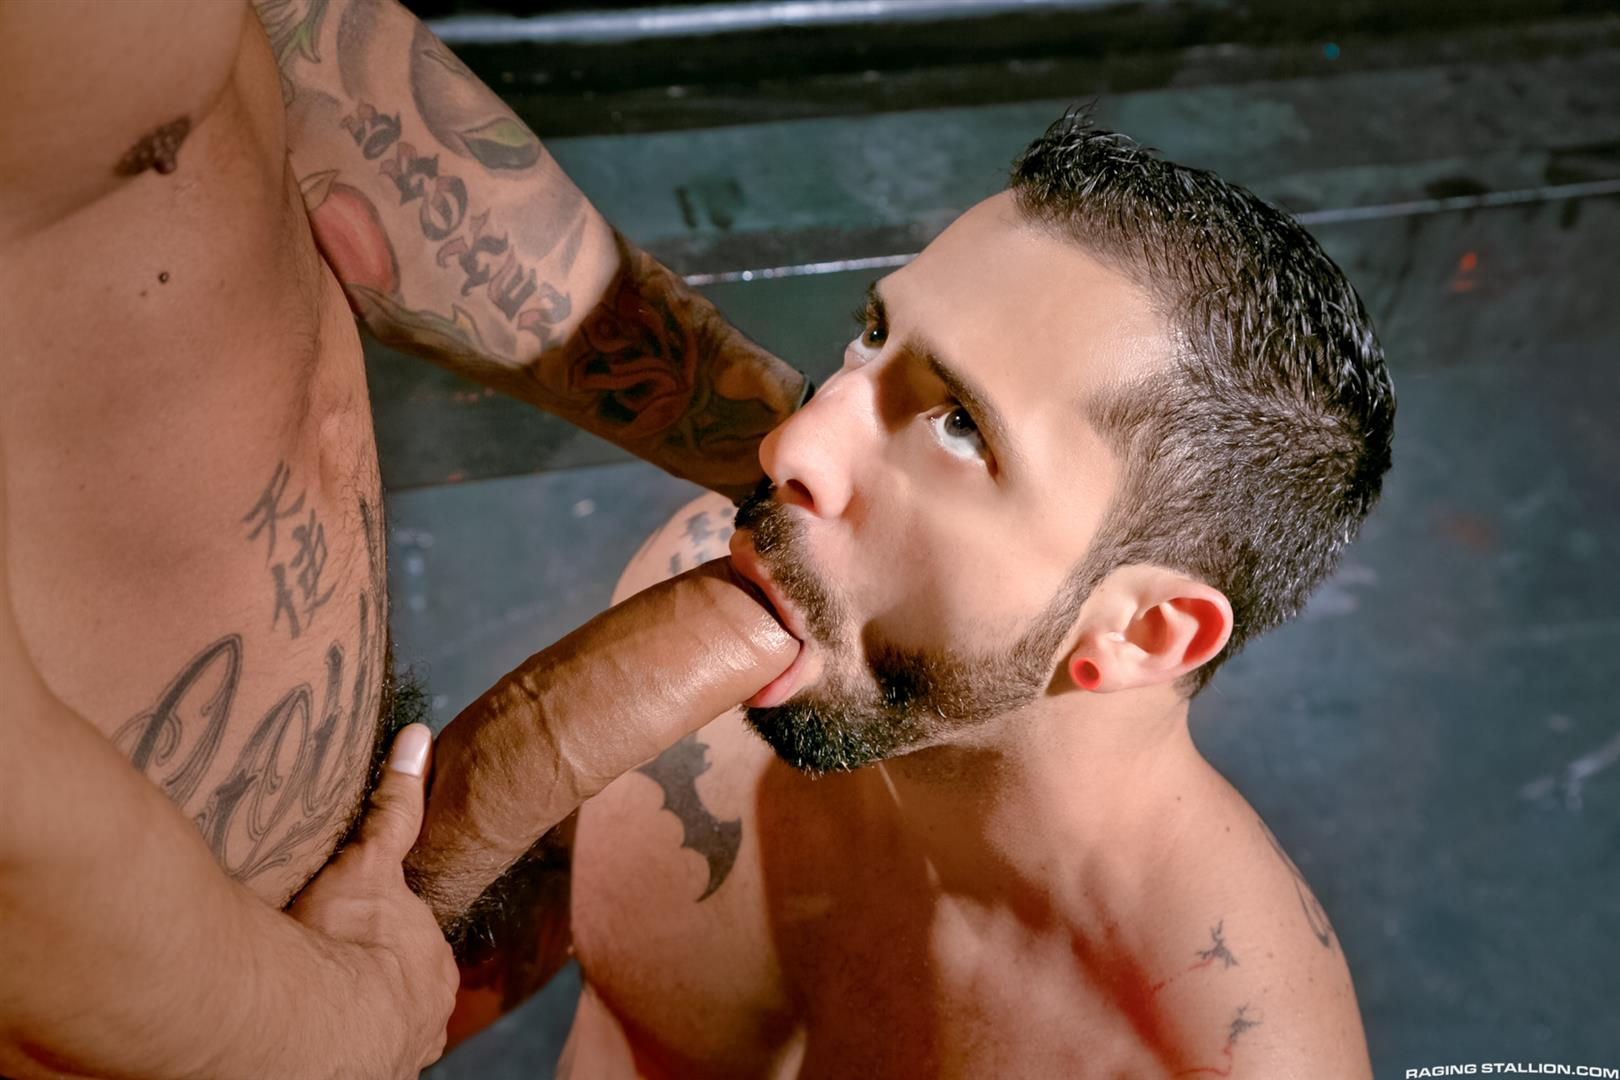 Raging-Stallion-Boomer-Banks-and-Nick-Cross-Huge-Uncut-Cock-Fucking-A-Latino-Ass-Amateur-Gay-Porn-05 Boomer Banks Fucking Nick Cross With His Huge Uncut Cock